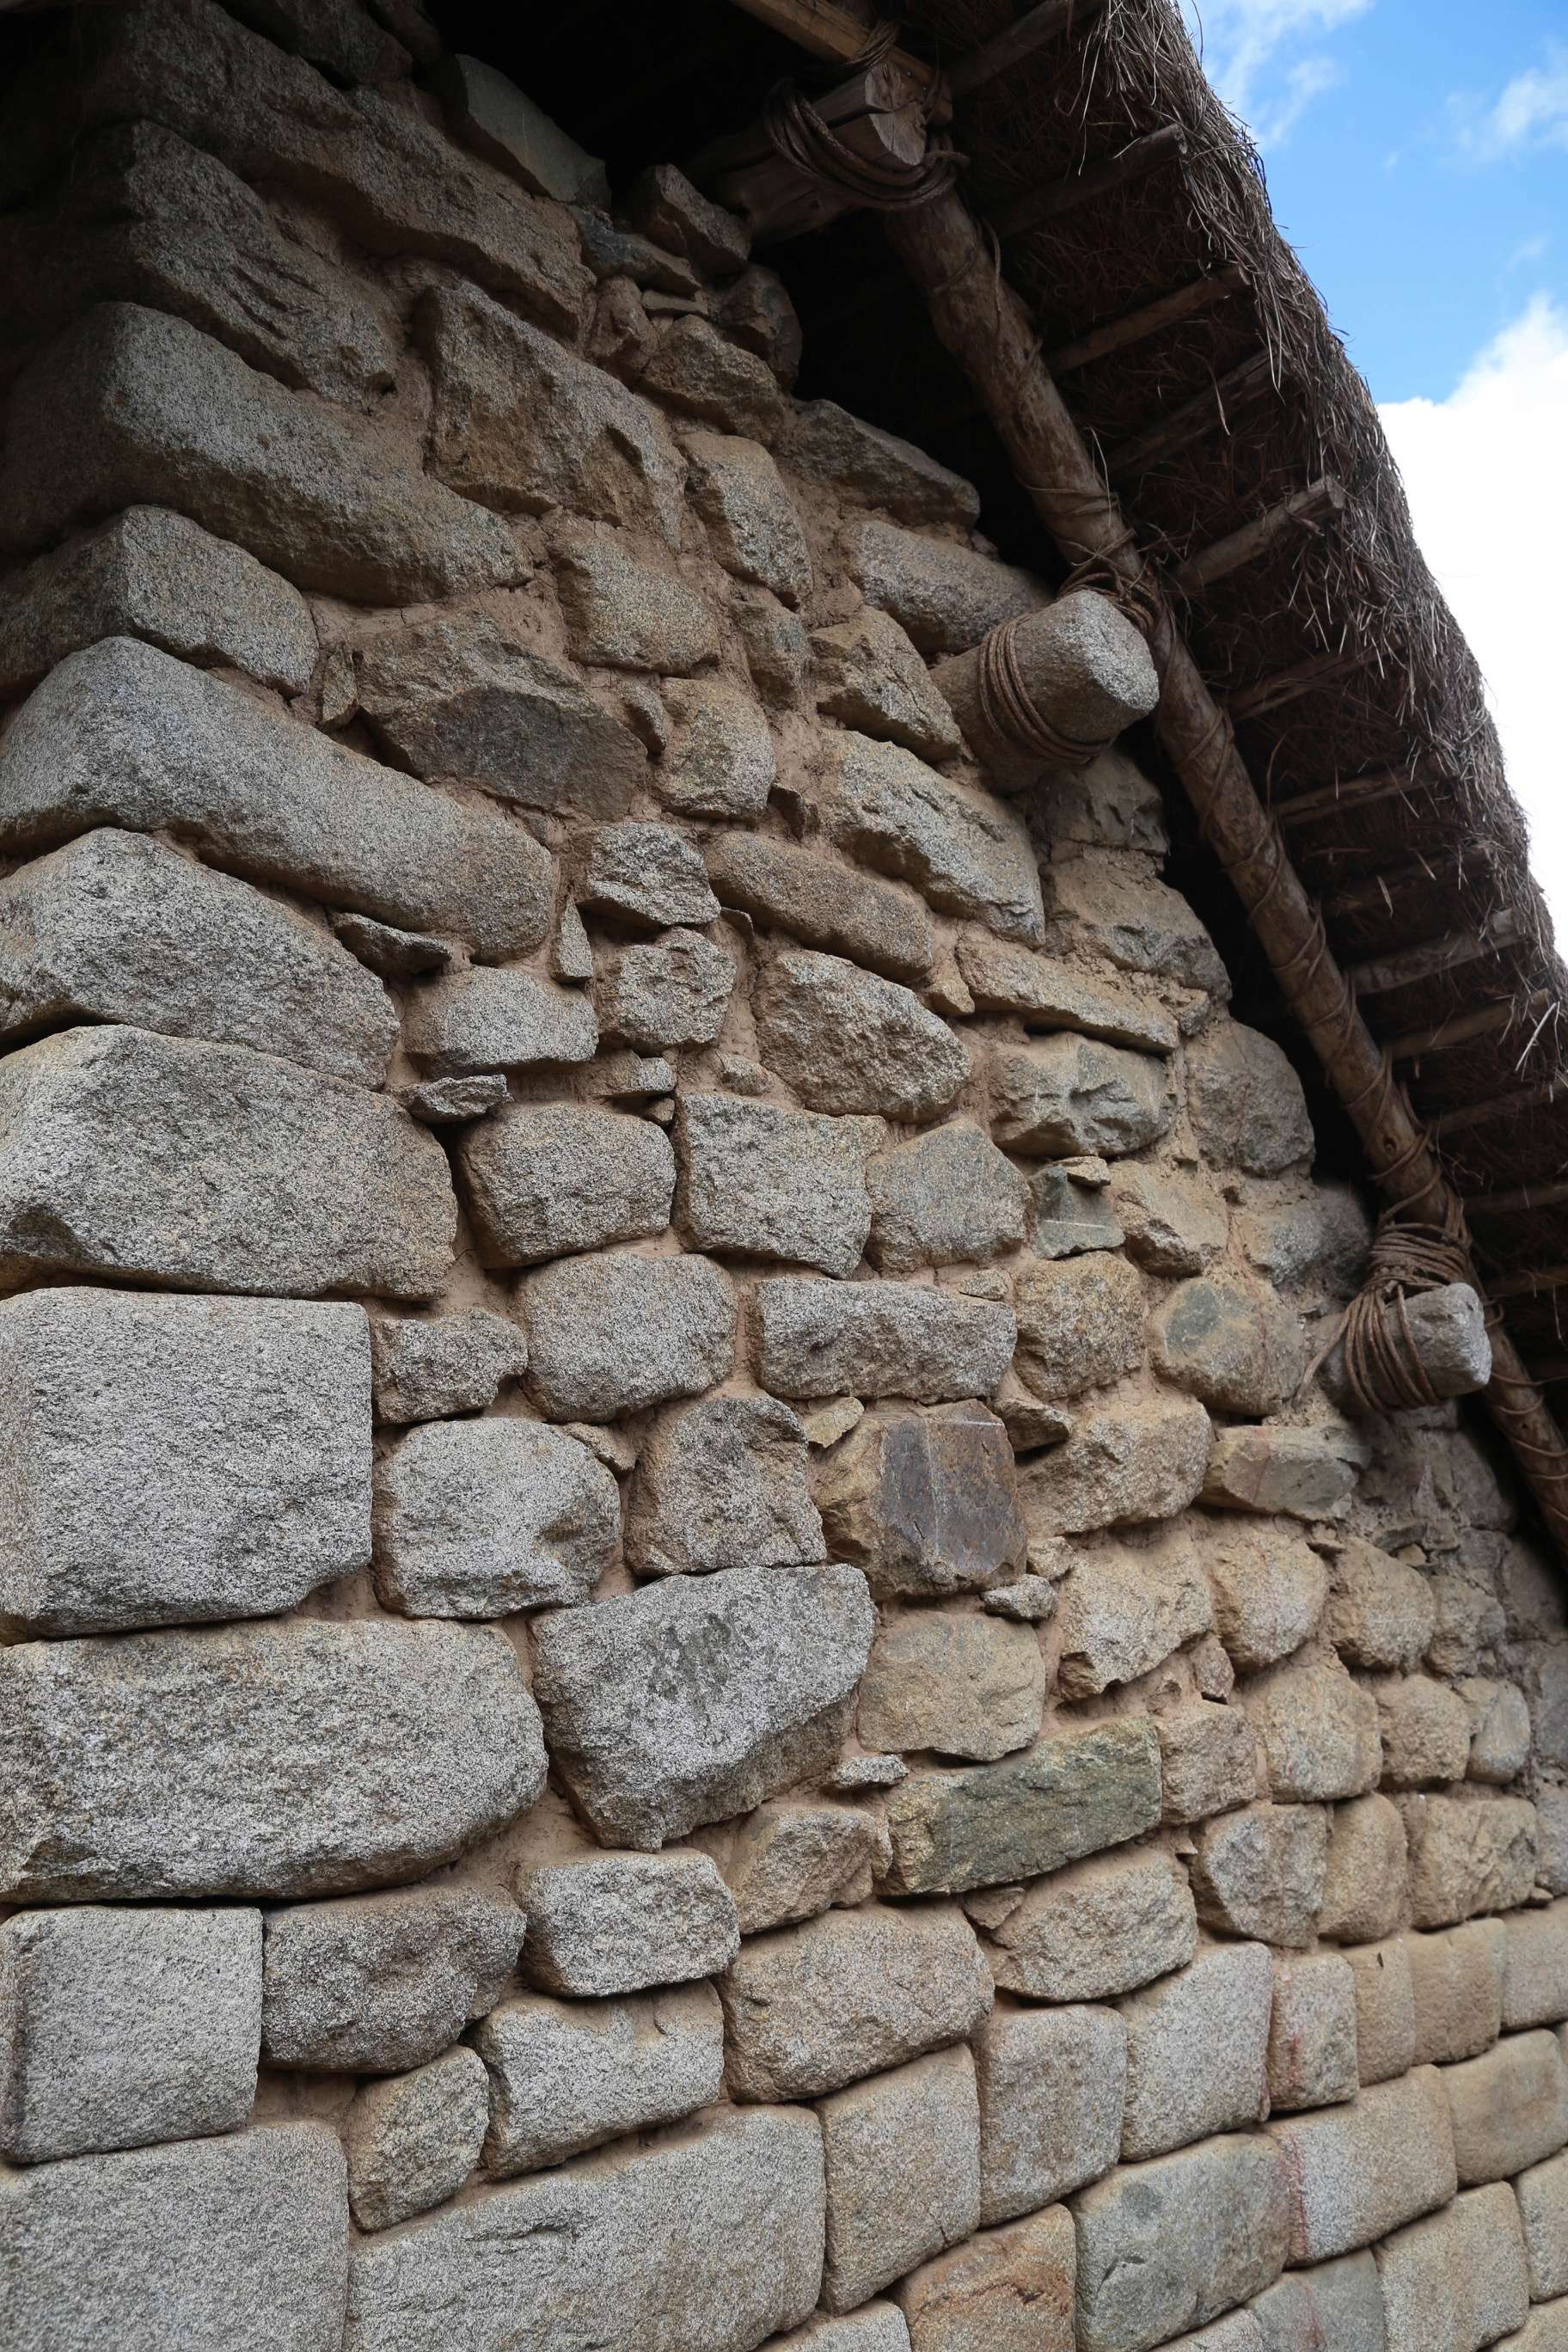 This restored building shows how timbers and roofing material were secured and provided a dry space for people to live and to store food.